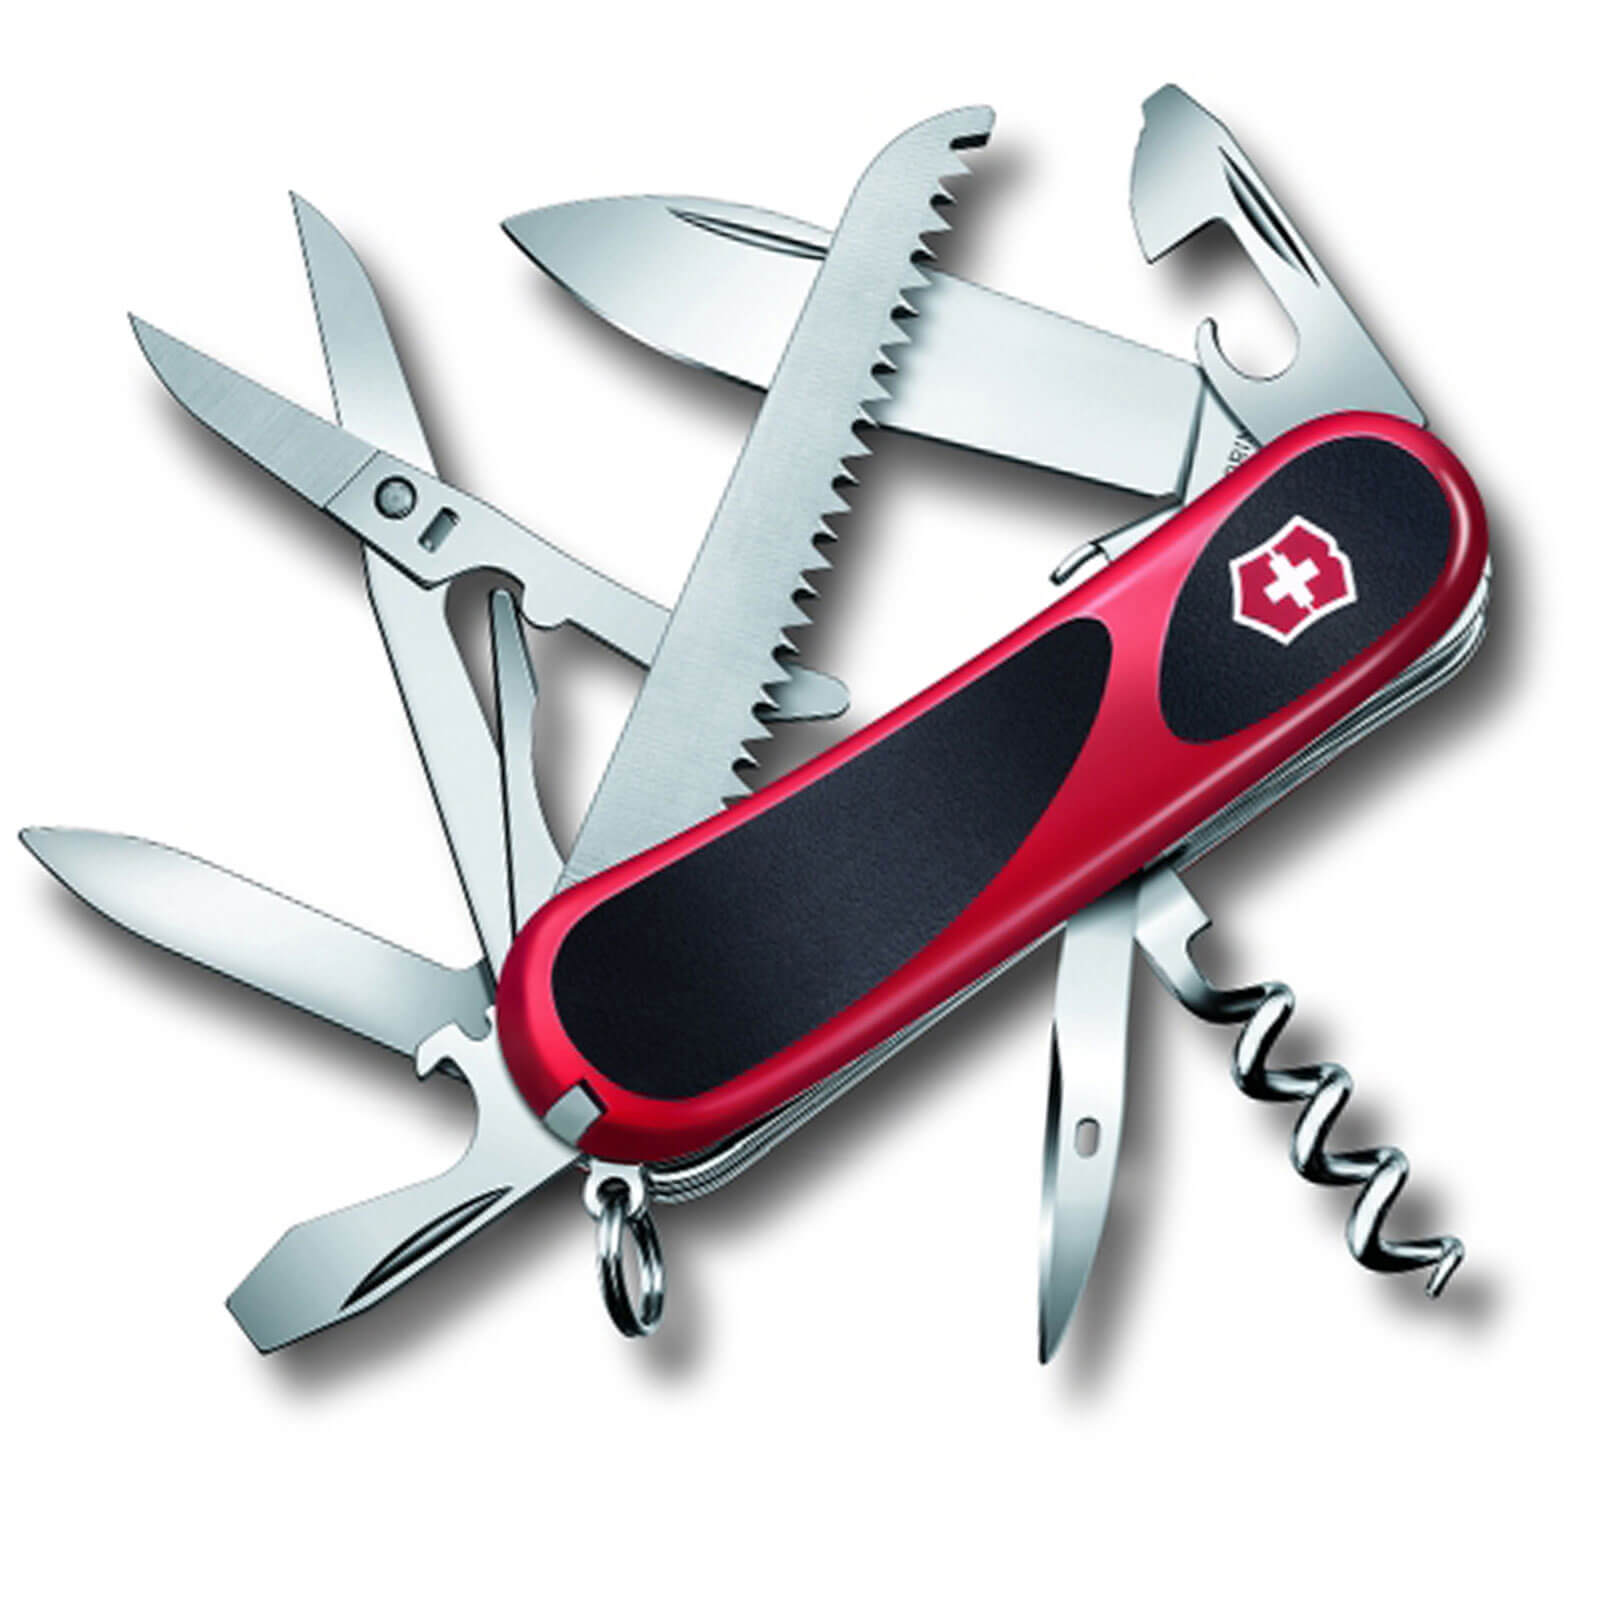 Image of Victorinox Evolution S17 Swiss Army Knife Red / Black